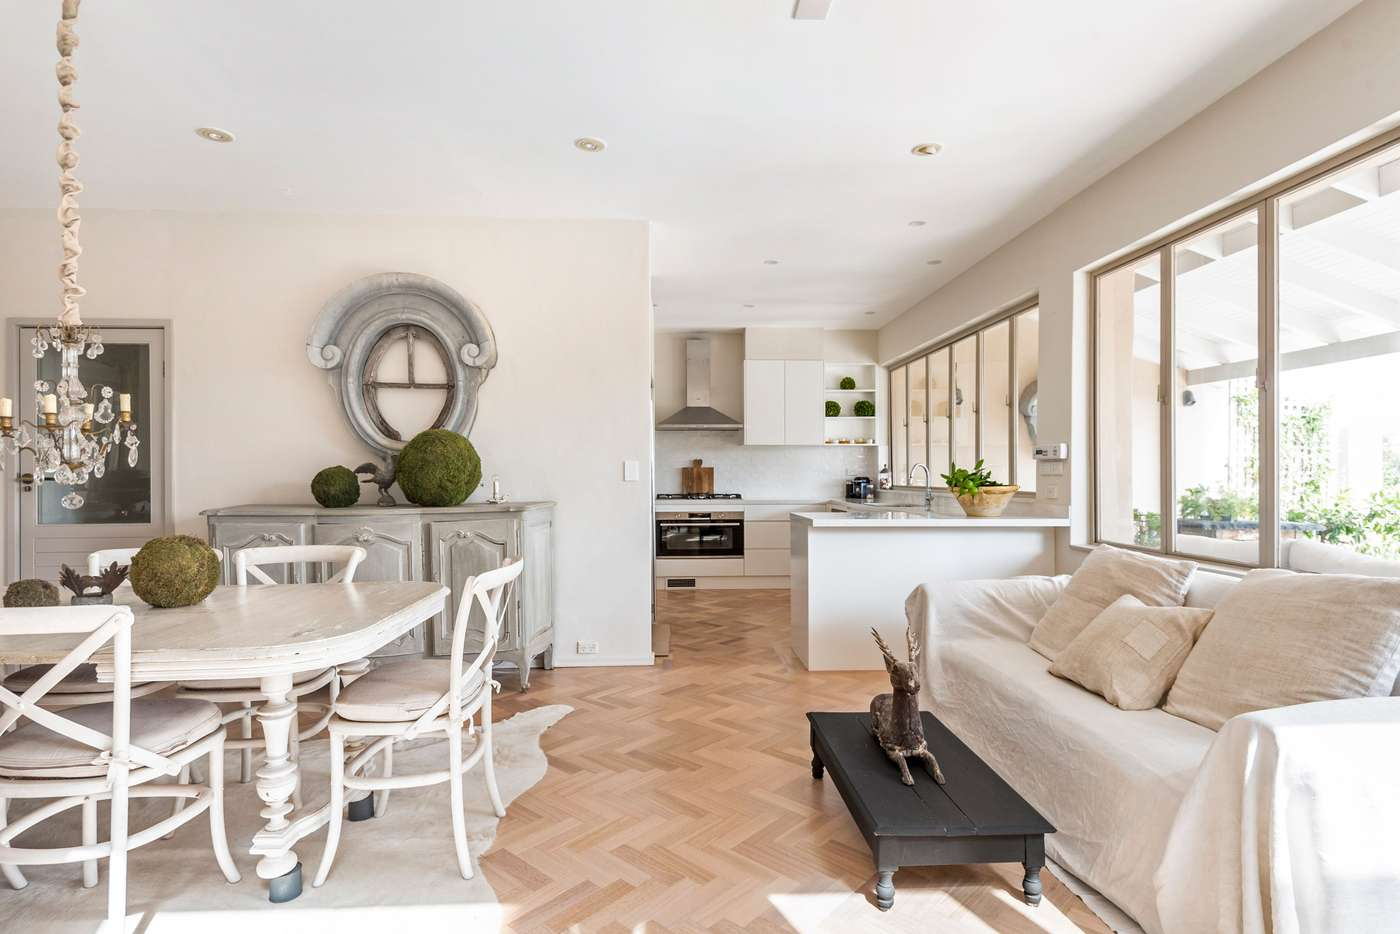 Fifth view of Homely house listing, 25 Wyong Road, Mosman NSW 2088